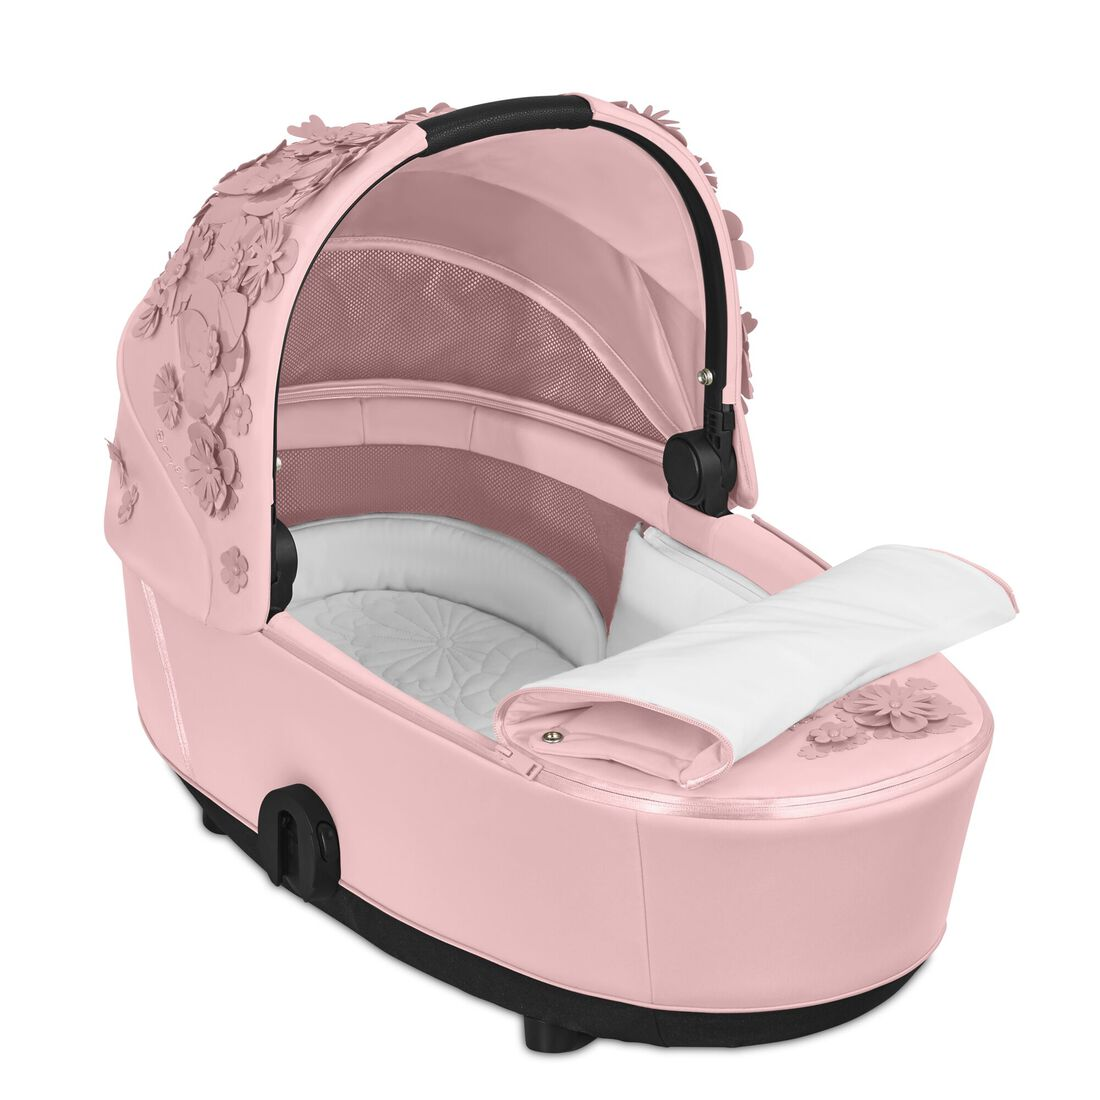 CYBEX Mios Lux Carry Cot - Pale Blush in Pale Blush large image number 2